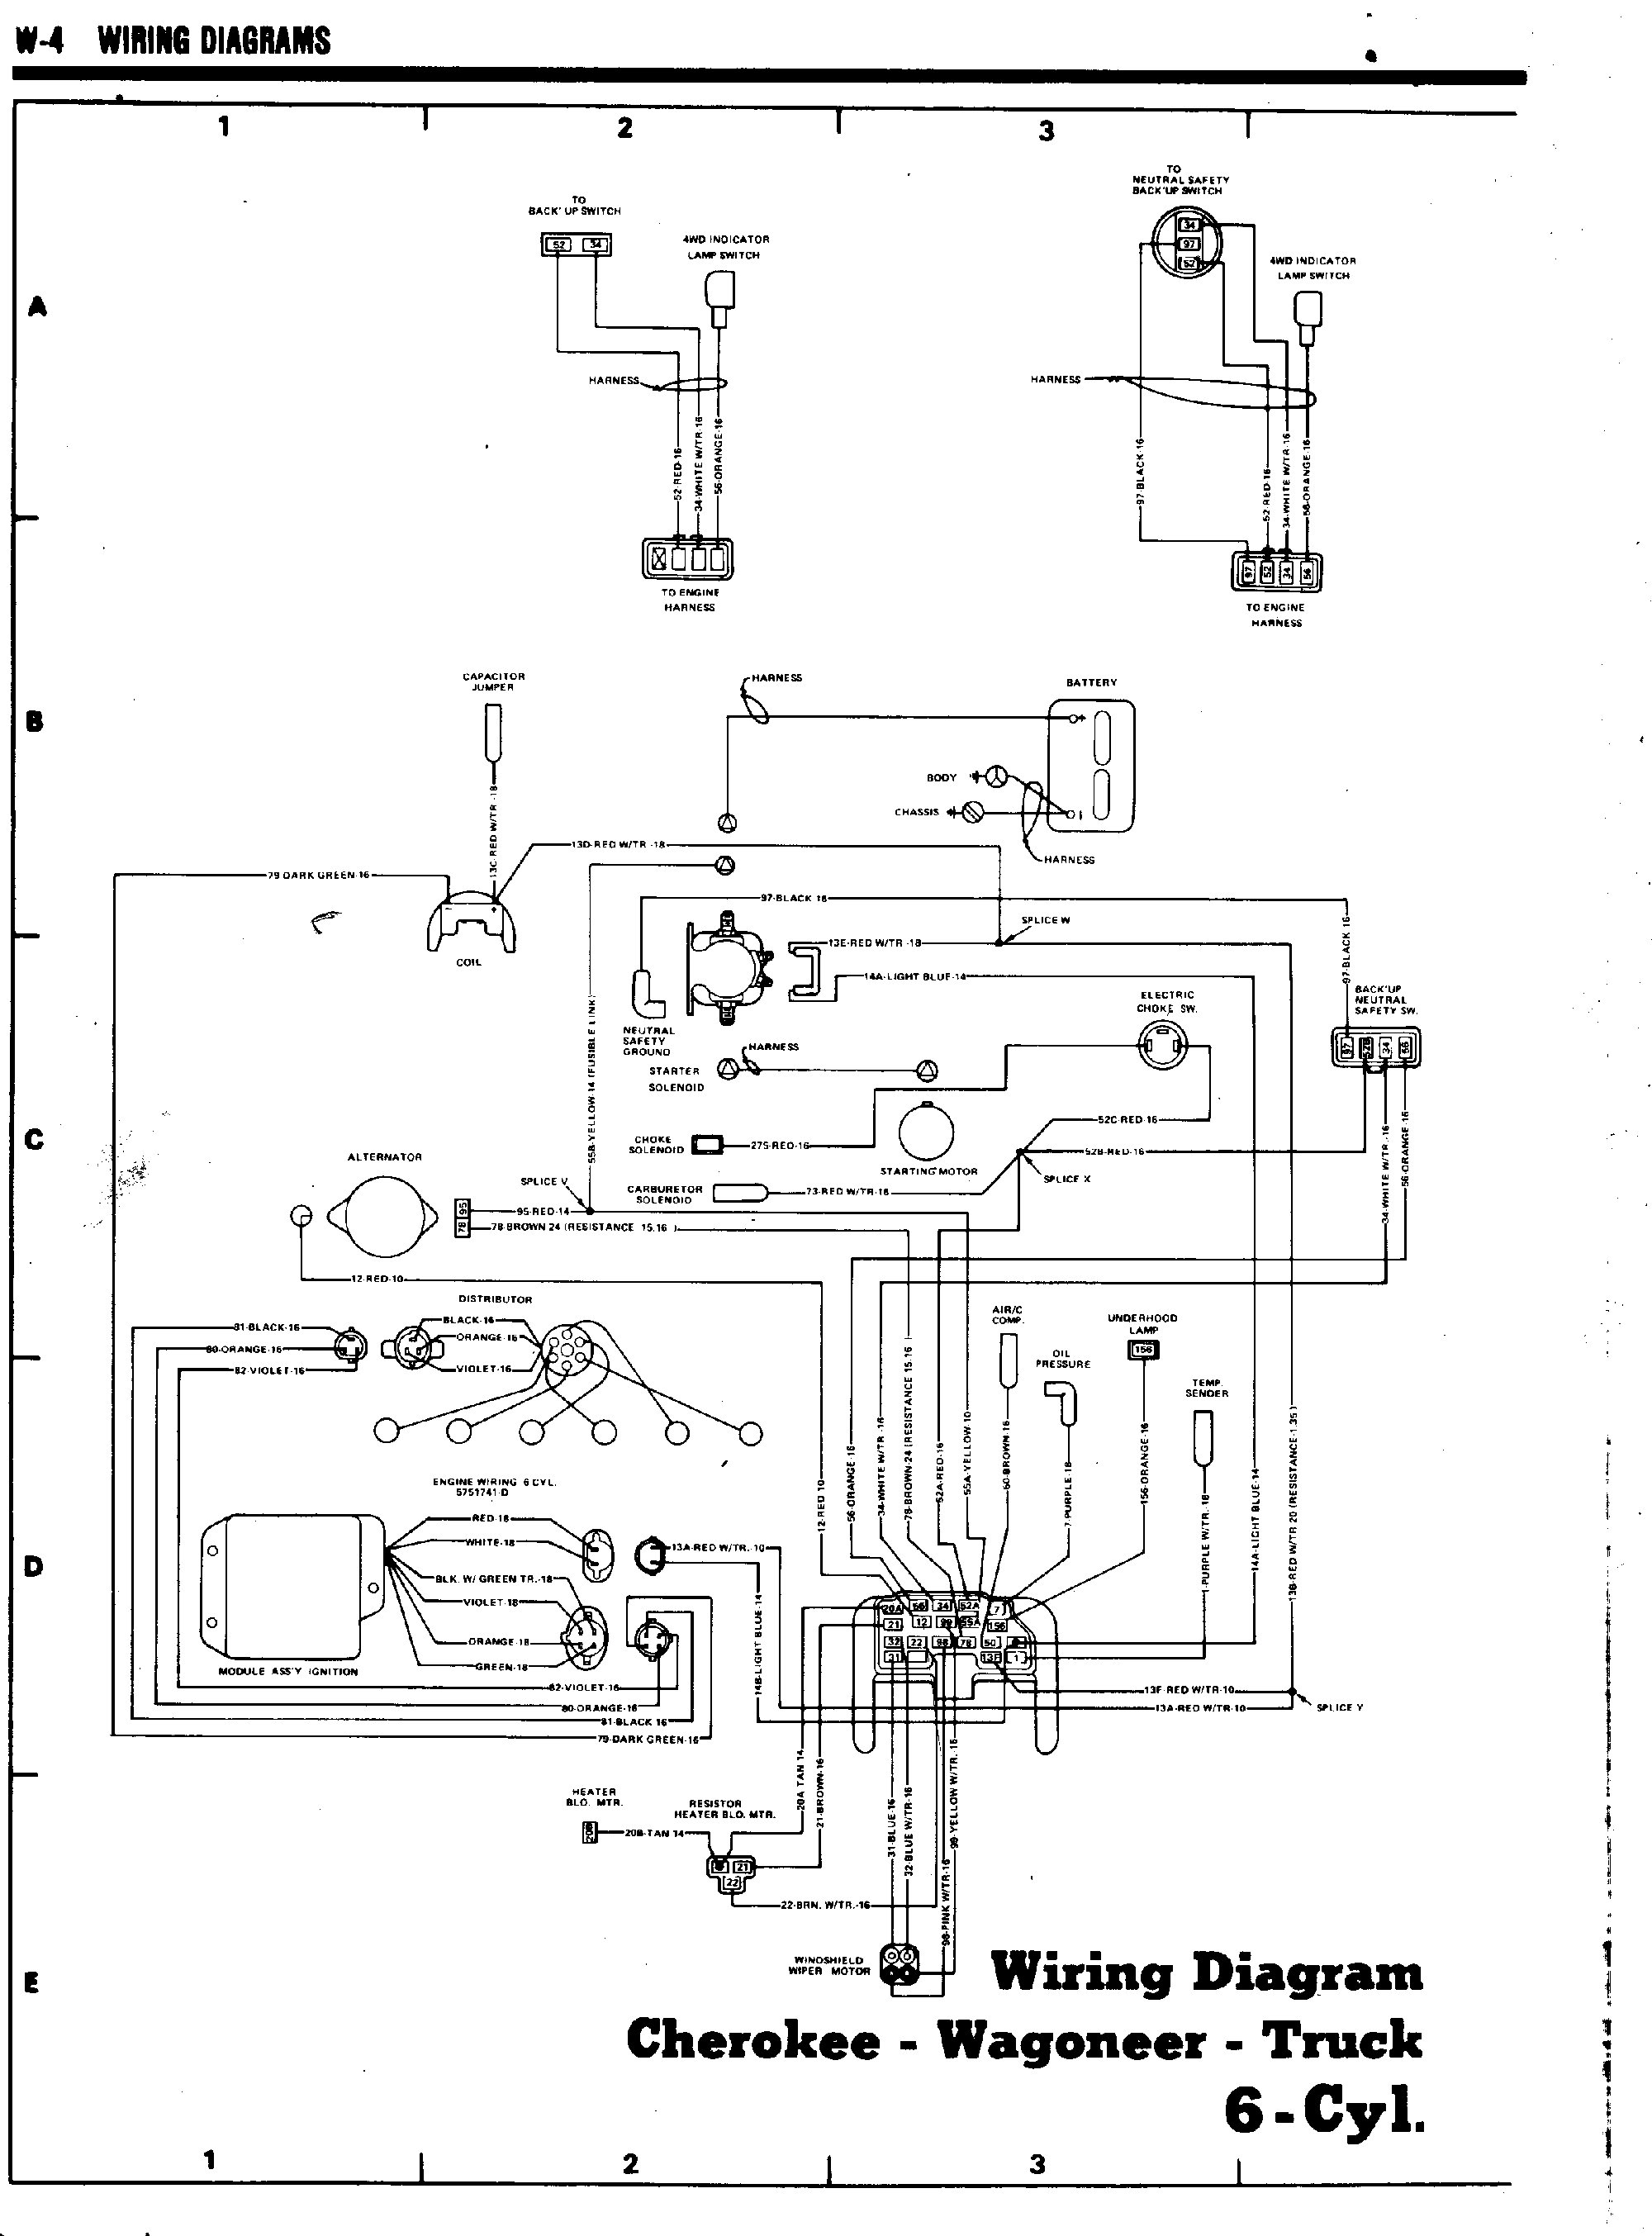 diagram] 1978 jeep wagoneer wiring diagram picture full version hd quality  diagram picture - kdiagram.usrdsicilia.it  usrdsicilia.it